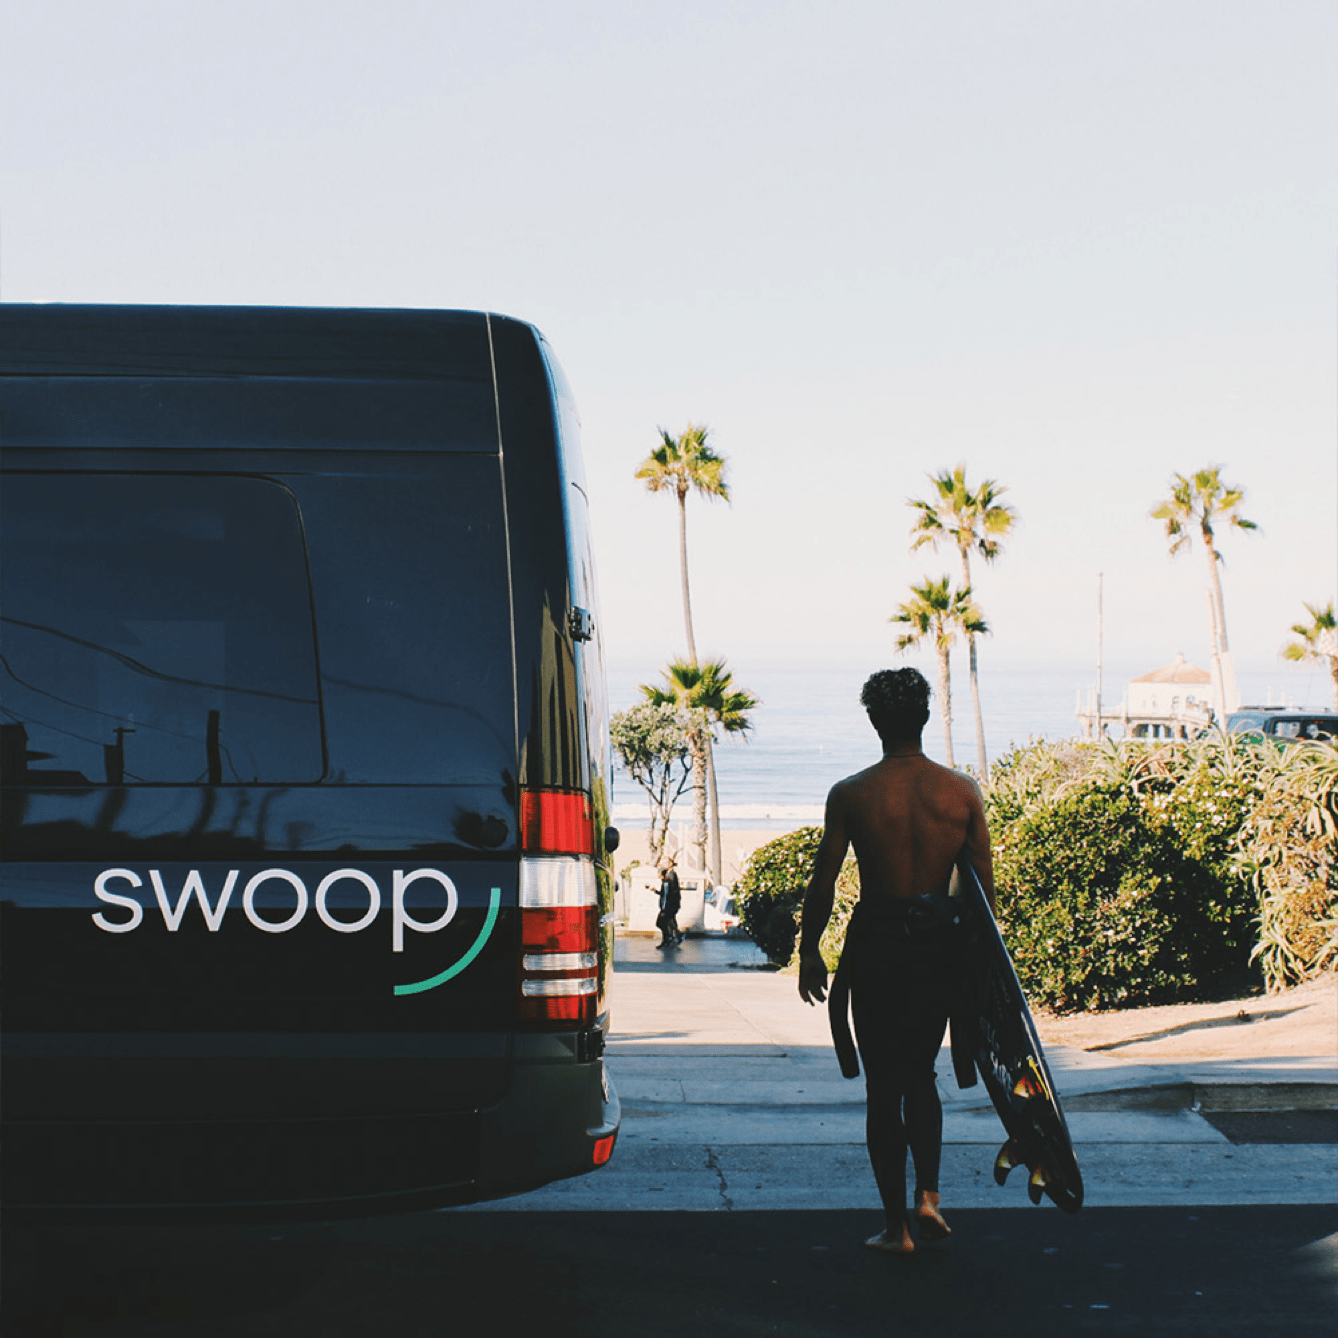 Swoop van with person walking